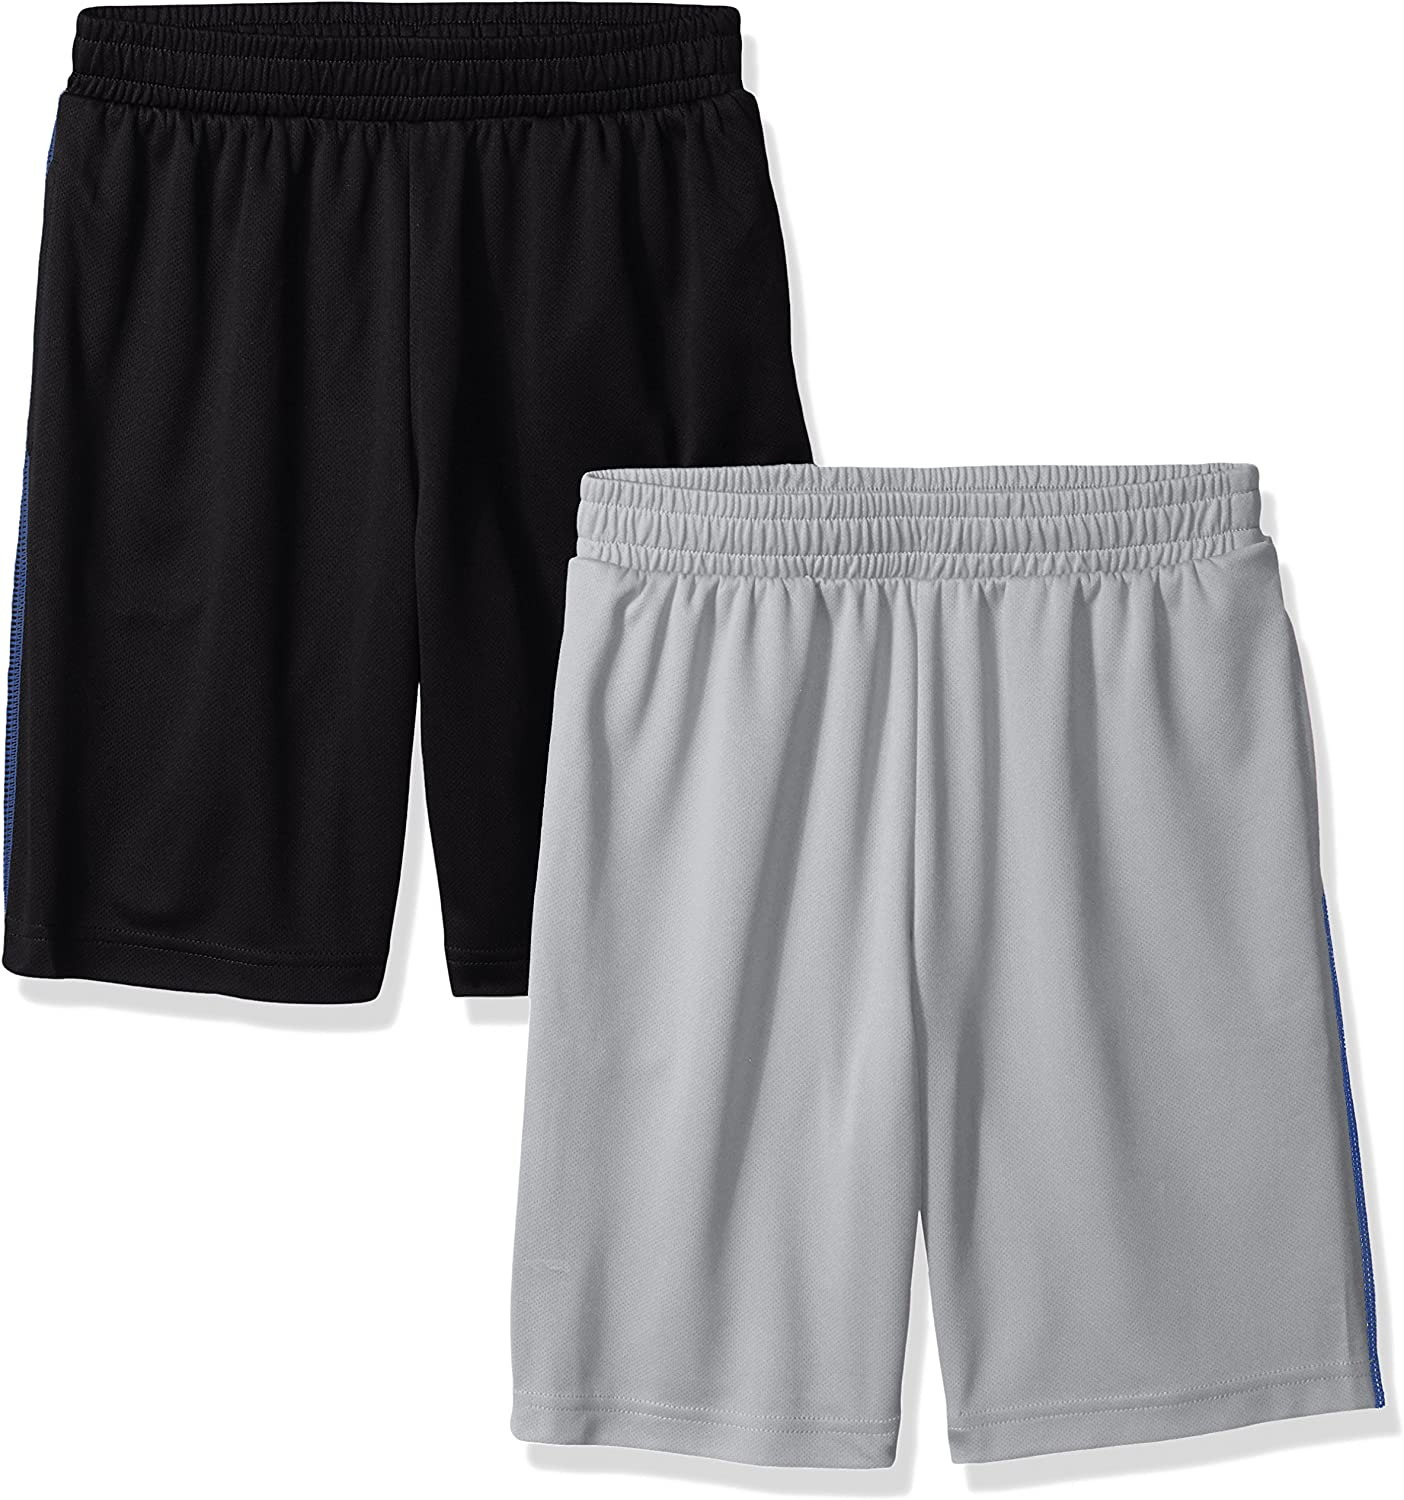 Essentials Boys 2-Pack Mesh Short